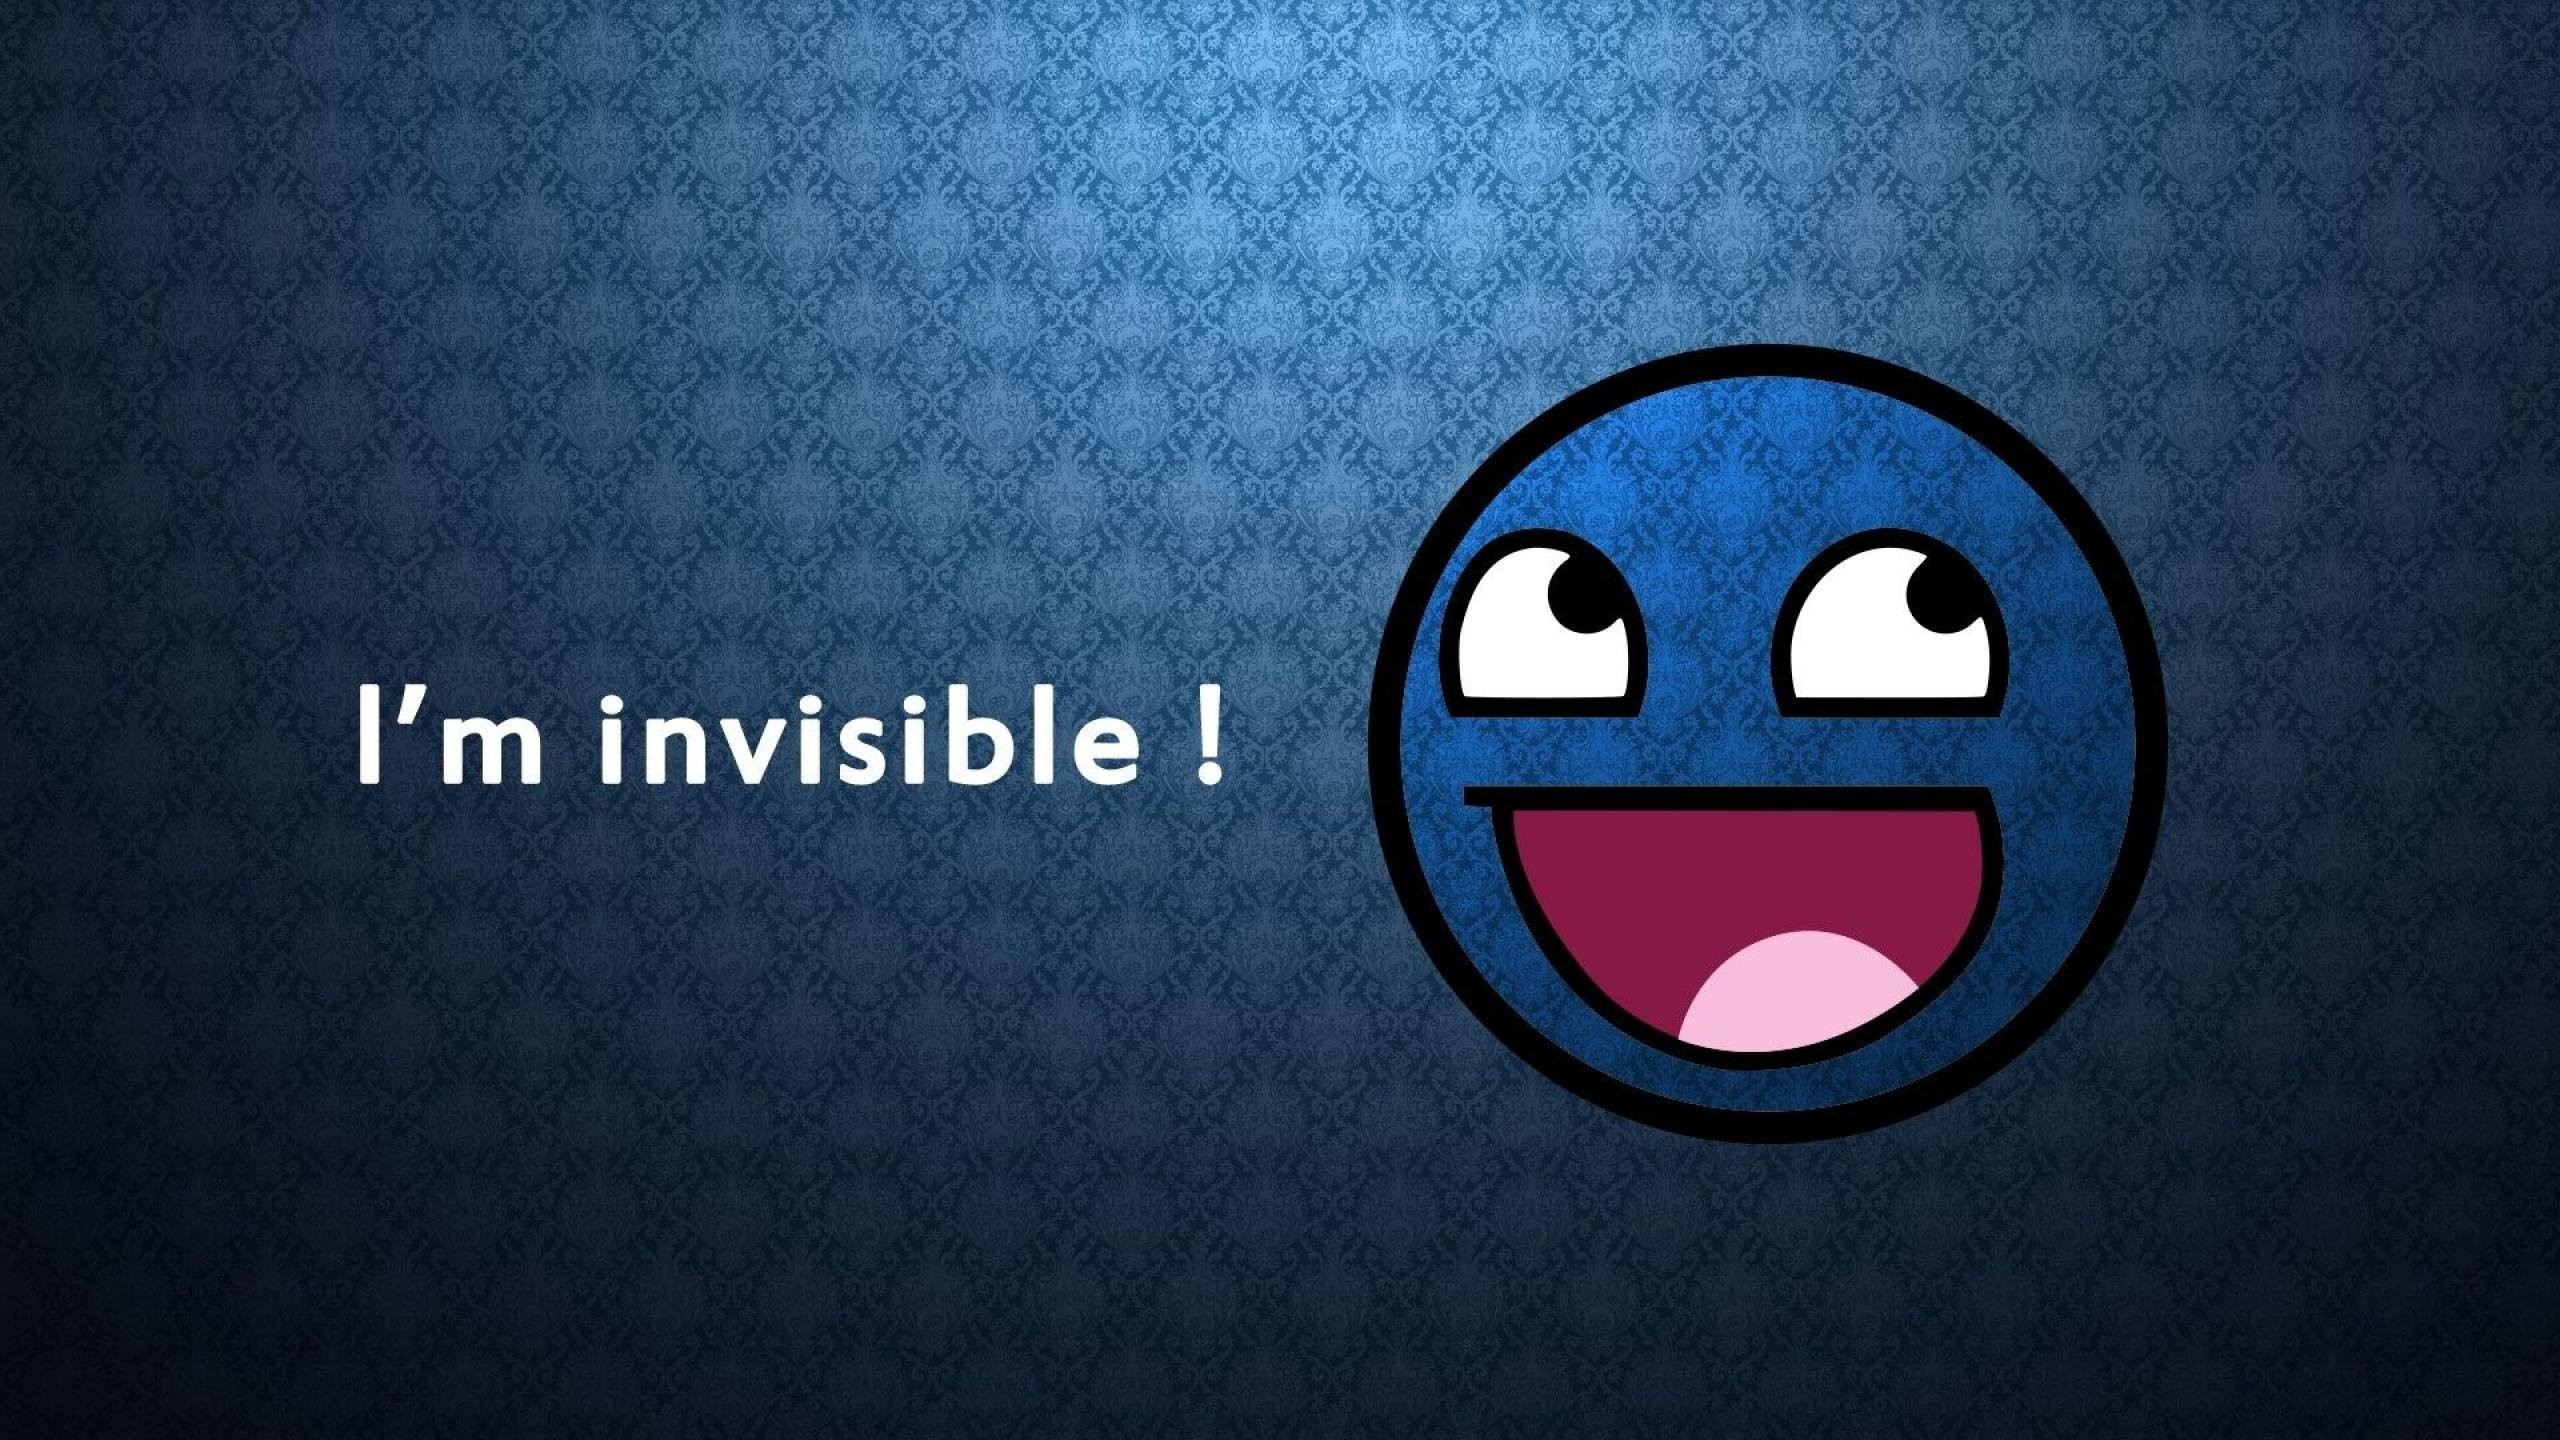 2560x1440 Invisible Awesome Face